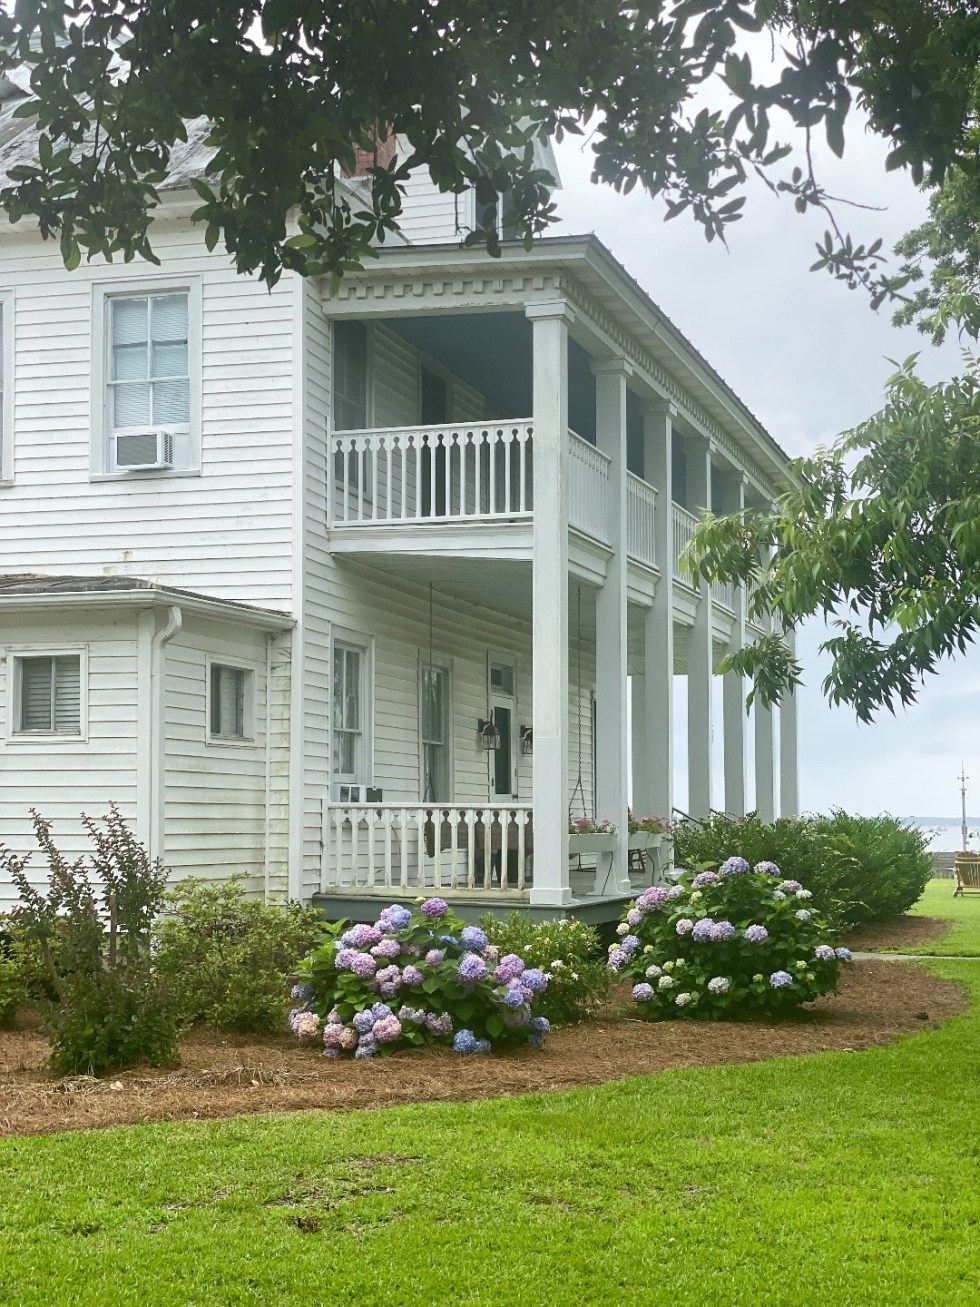 What to Do in Oriental, NC - I'm Fixin' To - @imfixintoblog | Things to do in Oriental NC by popular NC travel blog, I'm Fixin' To: image of a white Colonia house with purple hydrangea plants.